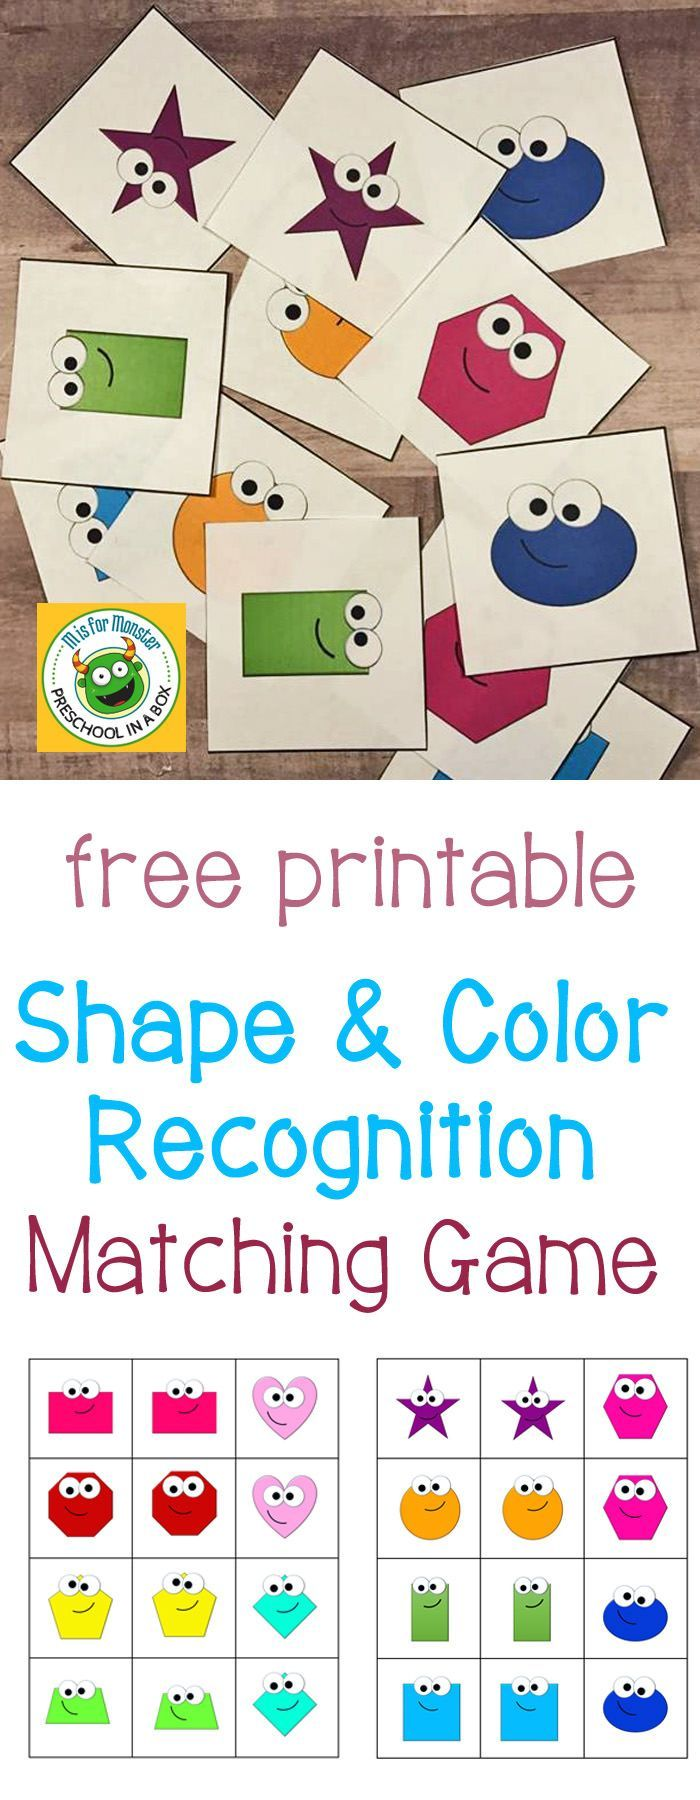 Shape And Color Recognition Matching Game Free Printable